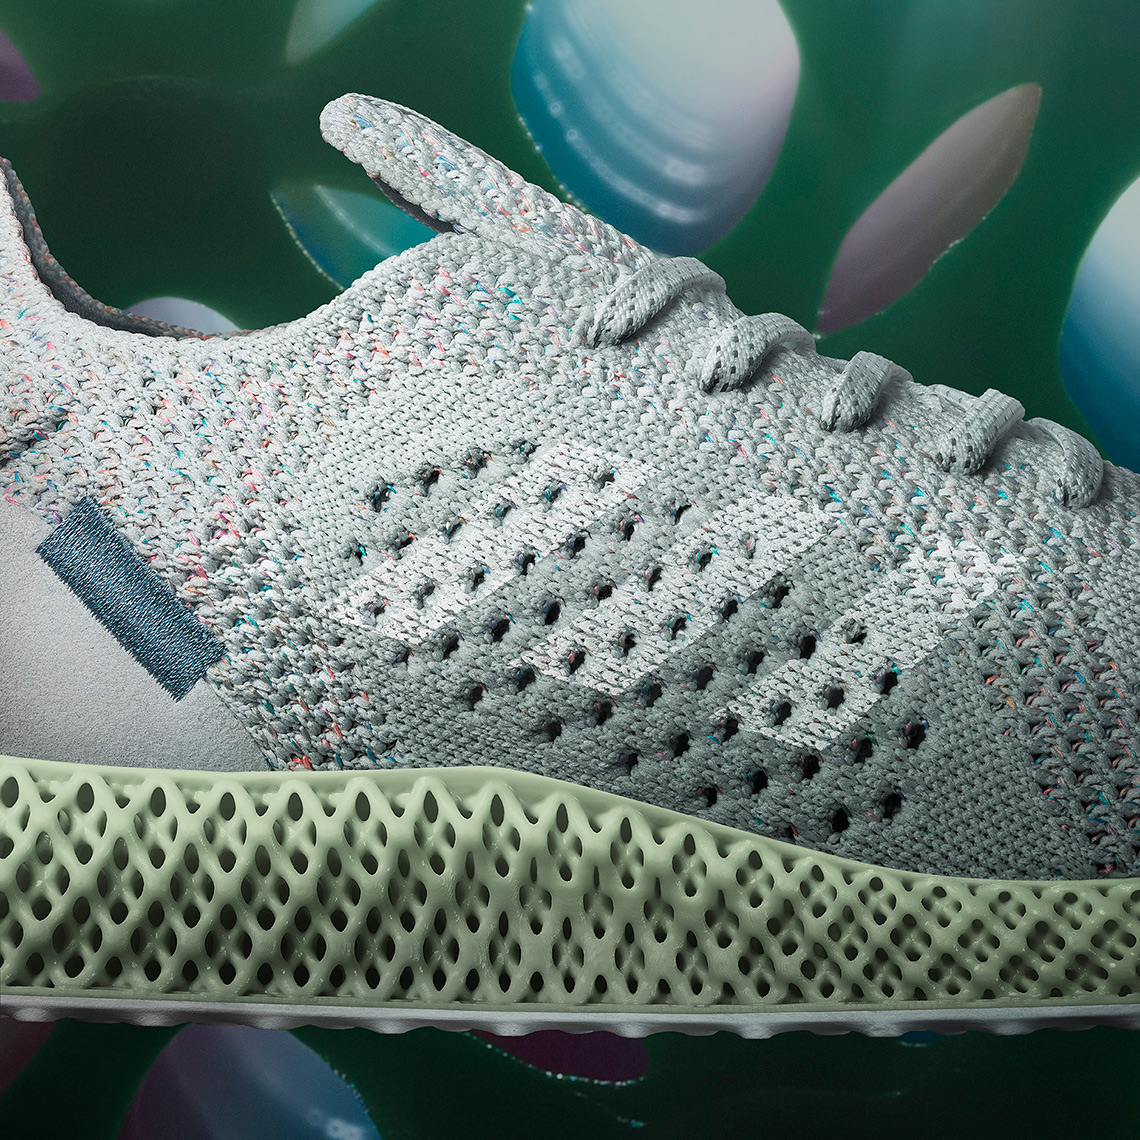 34ff1fee0b543 INVINCIBLE reveals their Futurecraft 4D collaboration with adidas Consortium